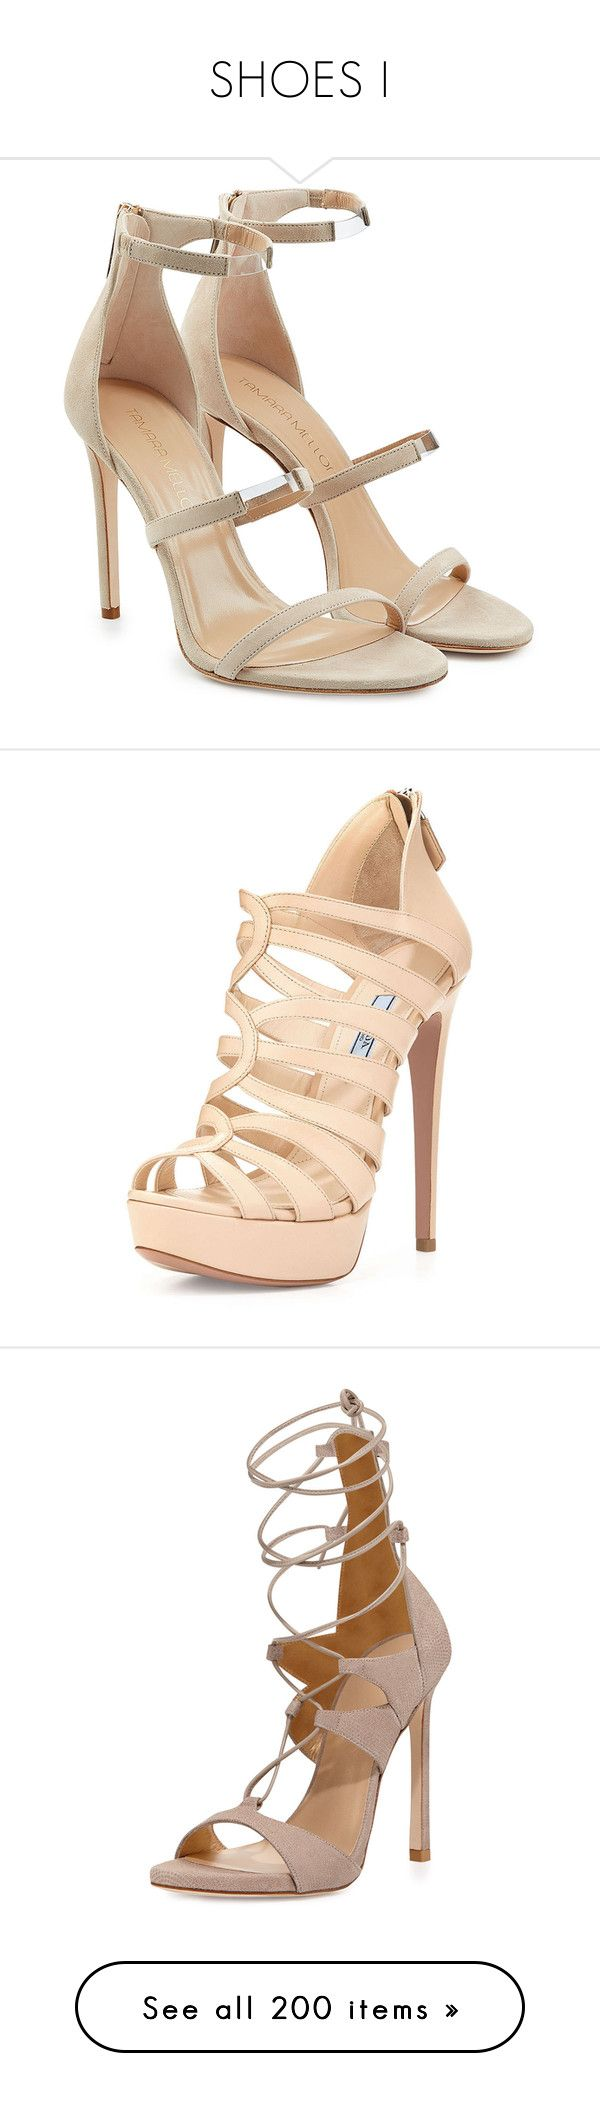 """""""SHOES I"""" by wanda-india-acosta ❤ liked on Polyvore featuring shoes, sandals, heels, schuhe, tamara mellon, beige, strappy stiletto sandals, beige strappy sandals, beige high heel sandals and strappy heel sandals"""